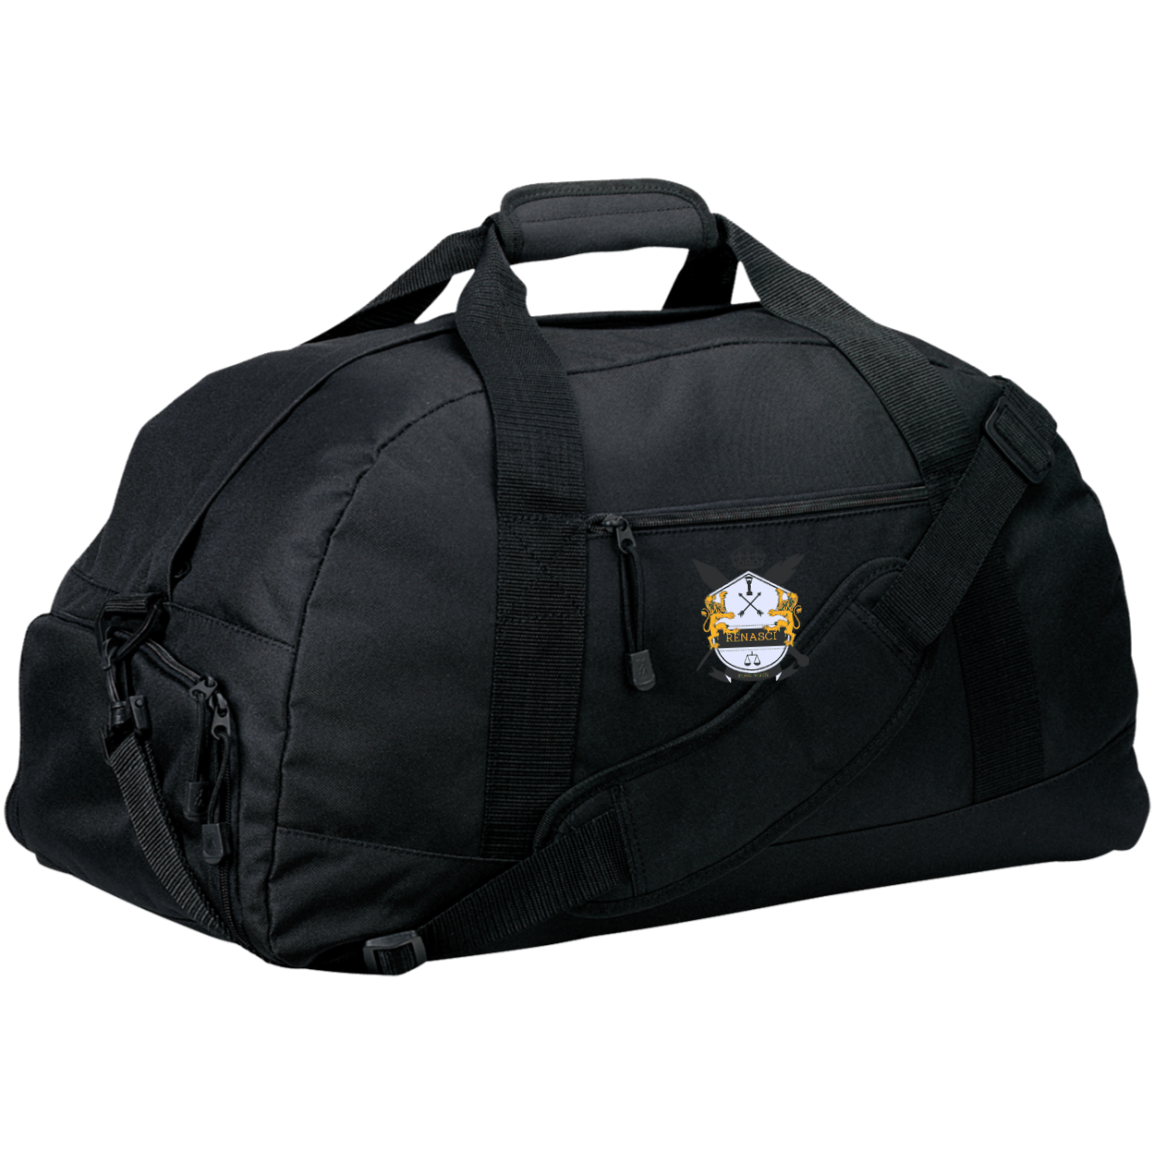 Basic Signature Crest Large-Sized Duffel Bag